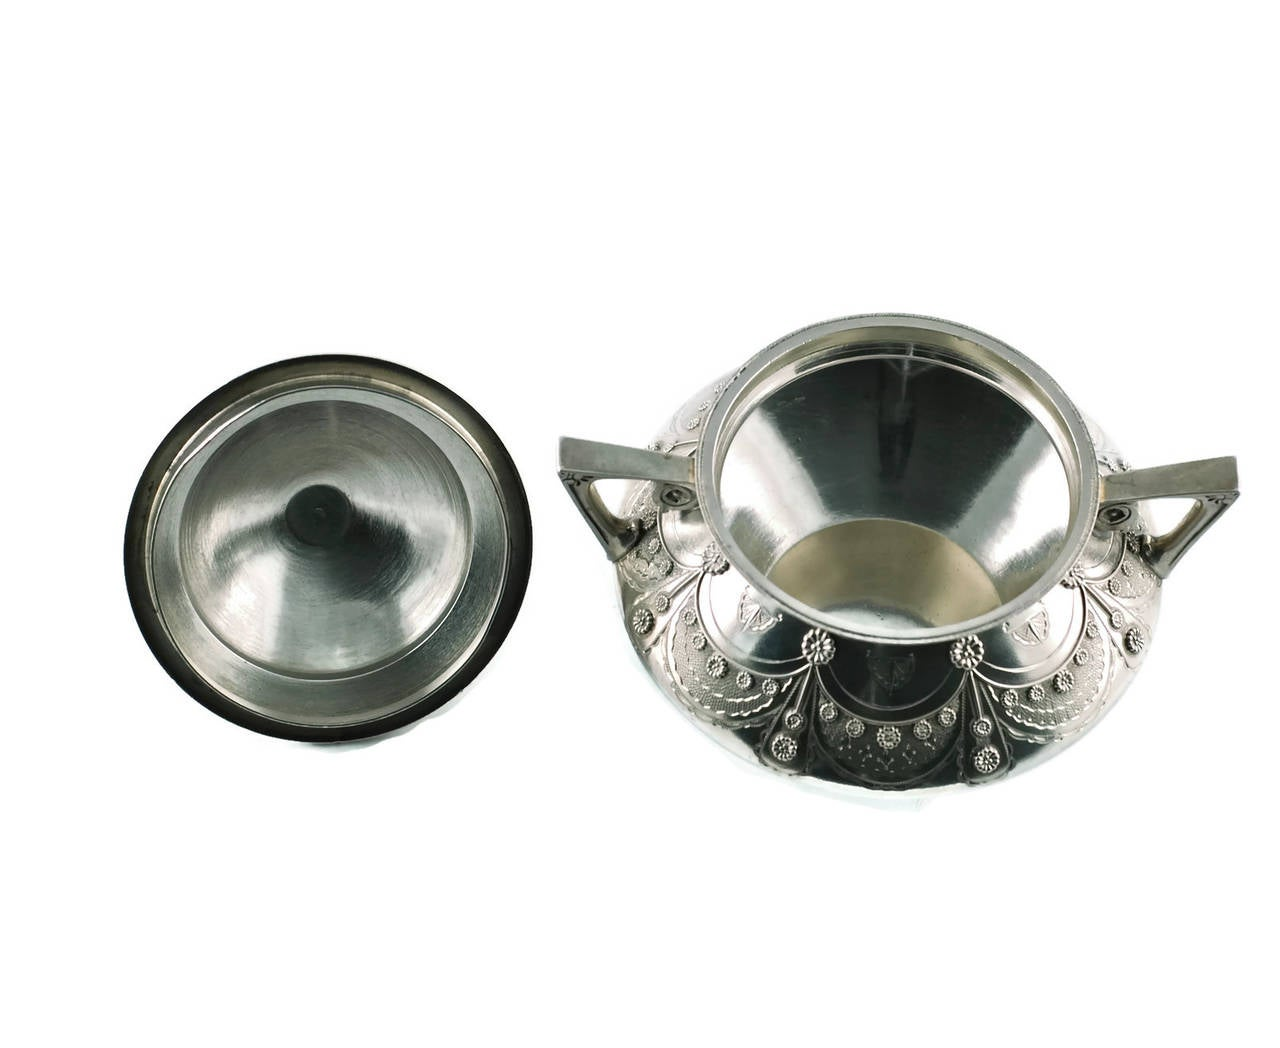 Tiffany & Co Aesthetic Movement Sterling Silver Cream and Sugar Set For Sale 2